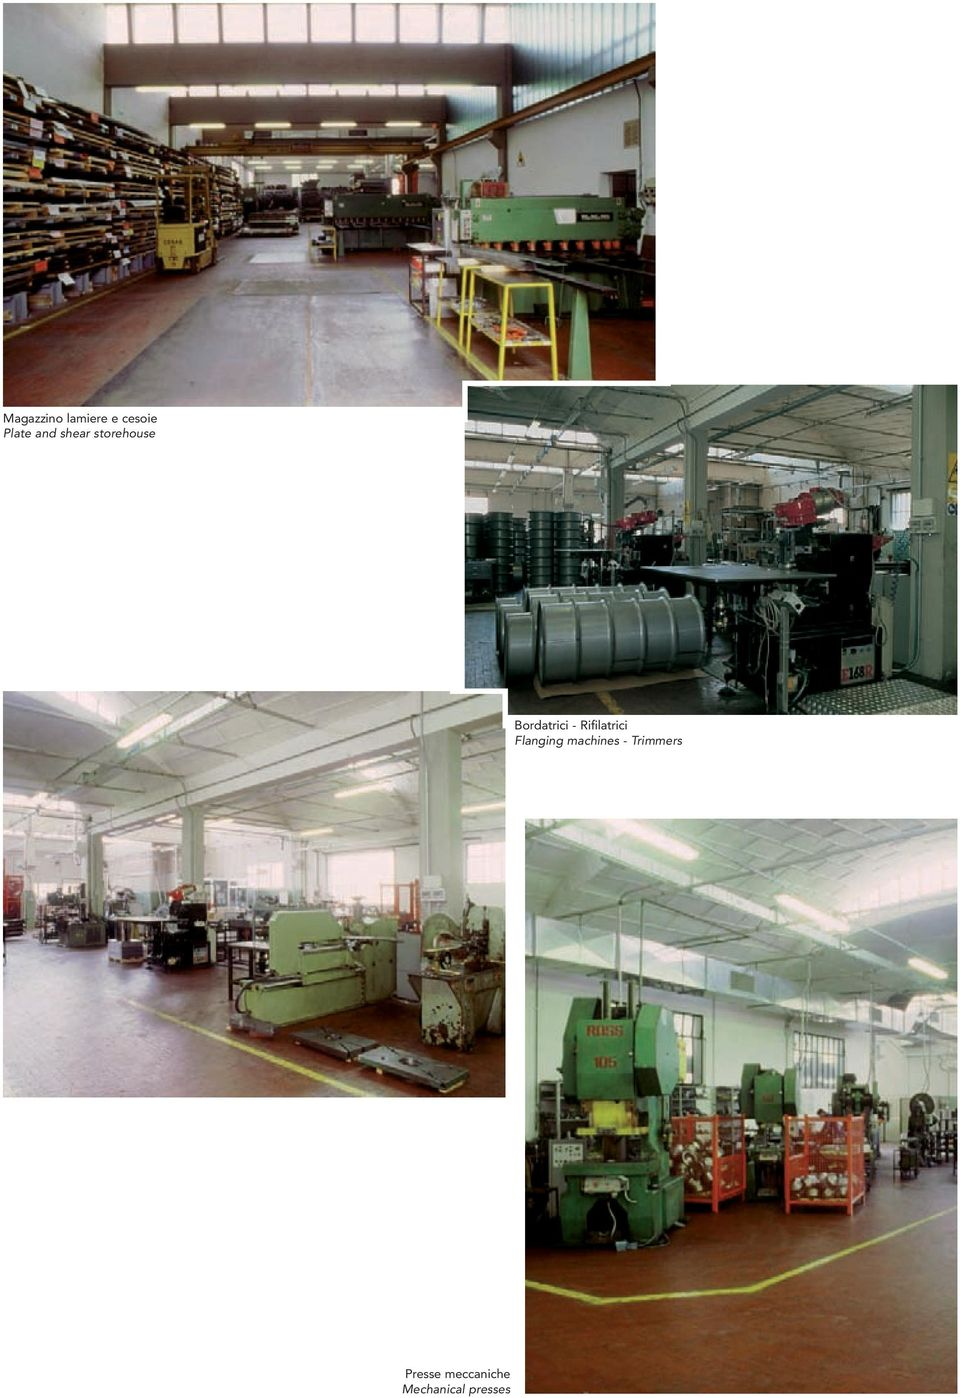 Rifilatrici Flanging machines -